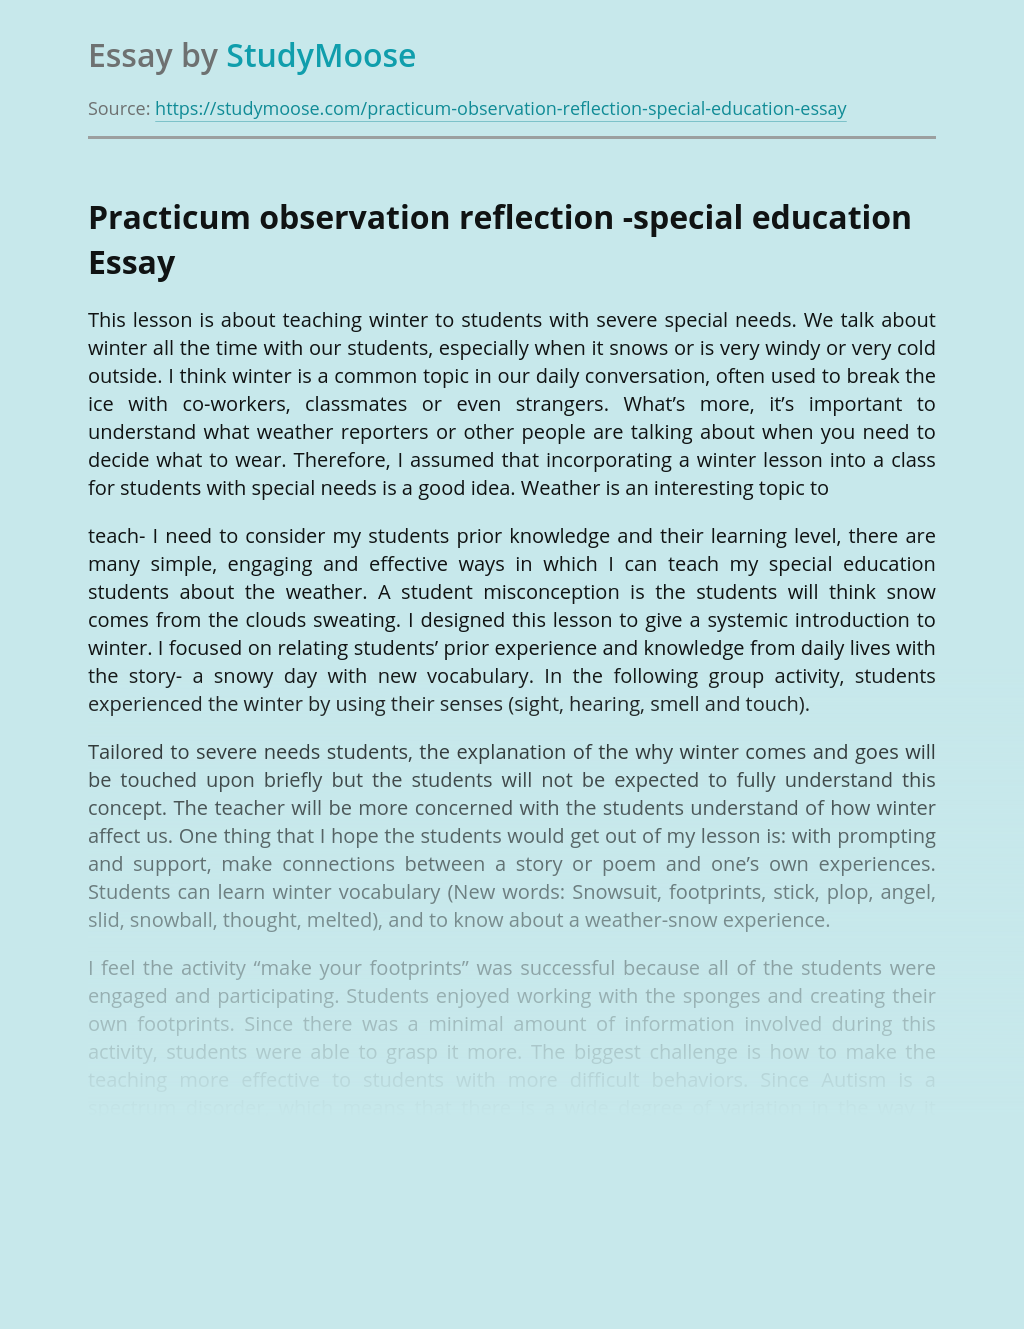 Practicum observation reflection -special education